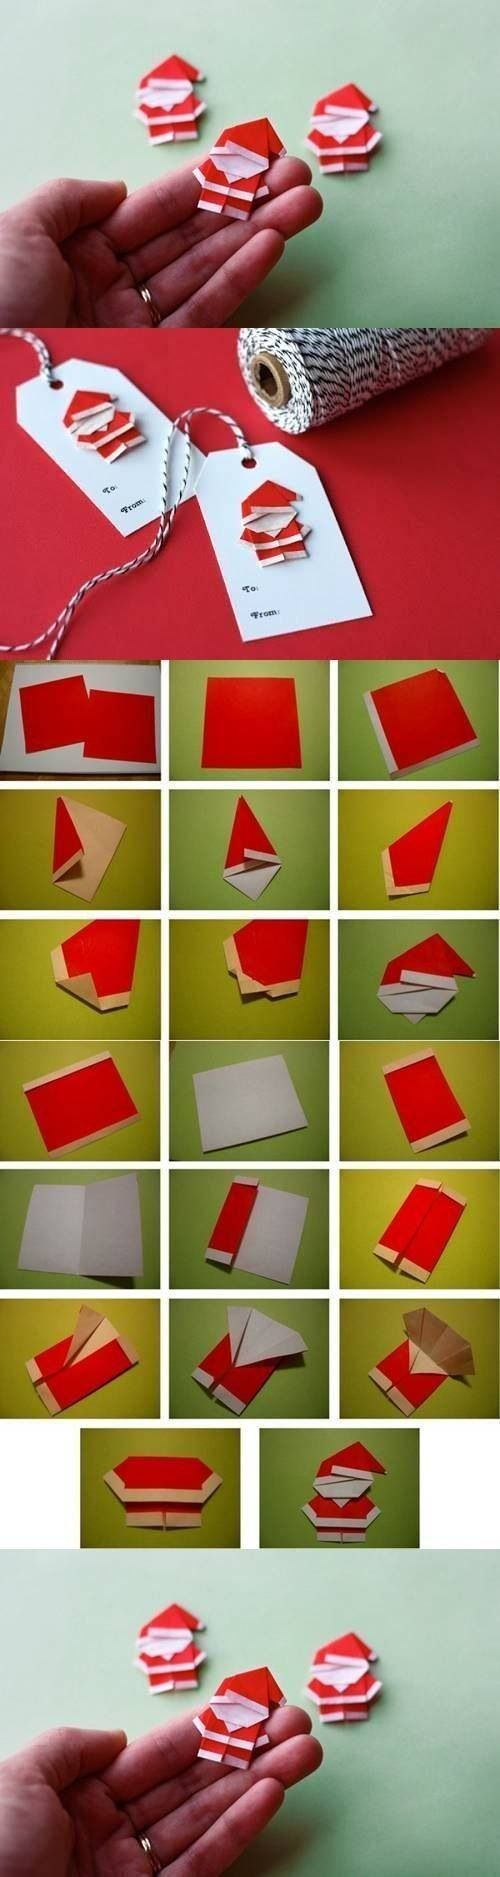 DIY Cute Paper Origami Santa Claus Kawaii Style Japamn Paper Art  Contemporary Christmas Gift Tag Or Card Design